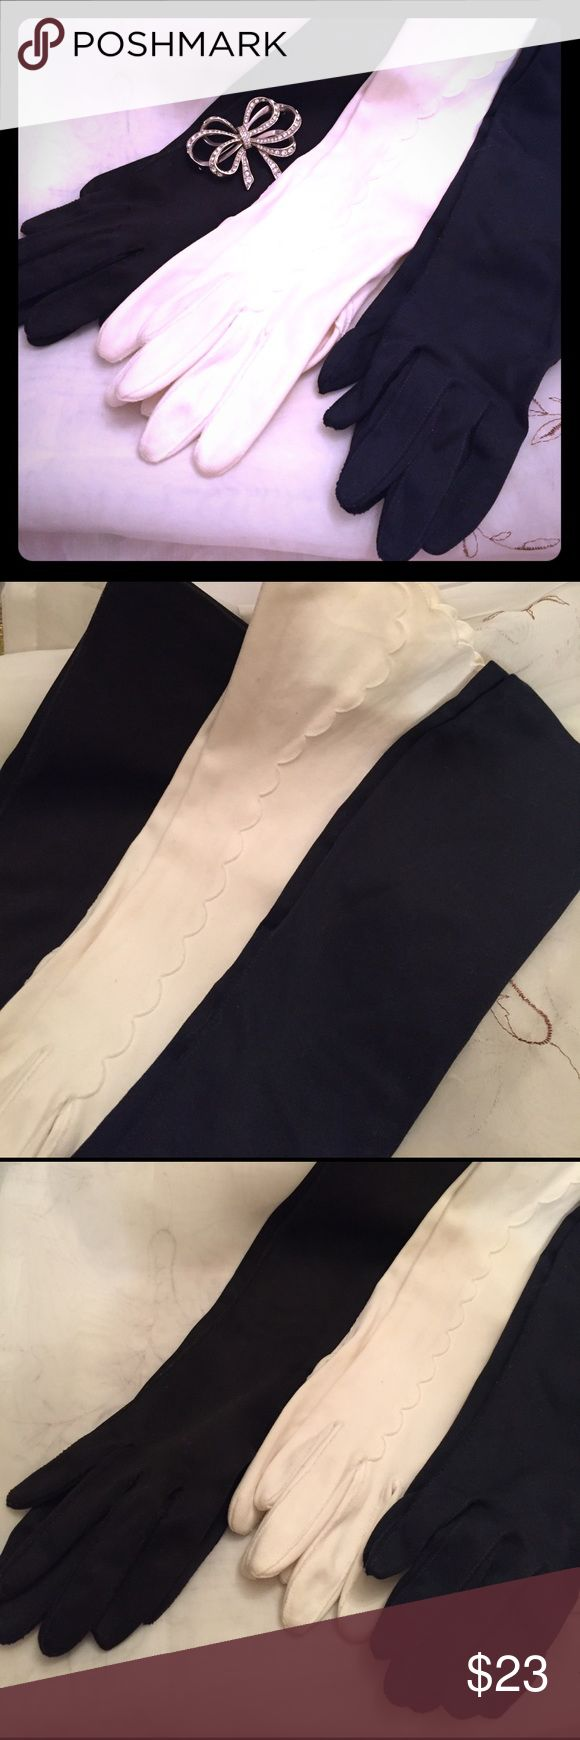 Vintage Ladies Old Fashion Gloves Long/three quarter length ladies old fashion gloves, black, dark navy blue, and white pair. Good condition, for small/petite hands, lovely for dress-up, or casual wear. Don't see these much in fashion. unknown Accessories Gloves & Mittens